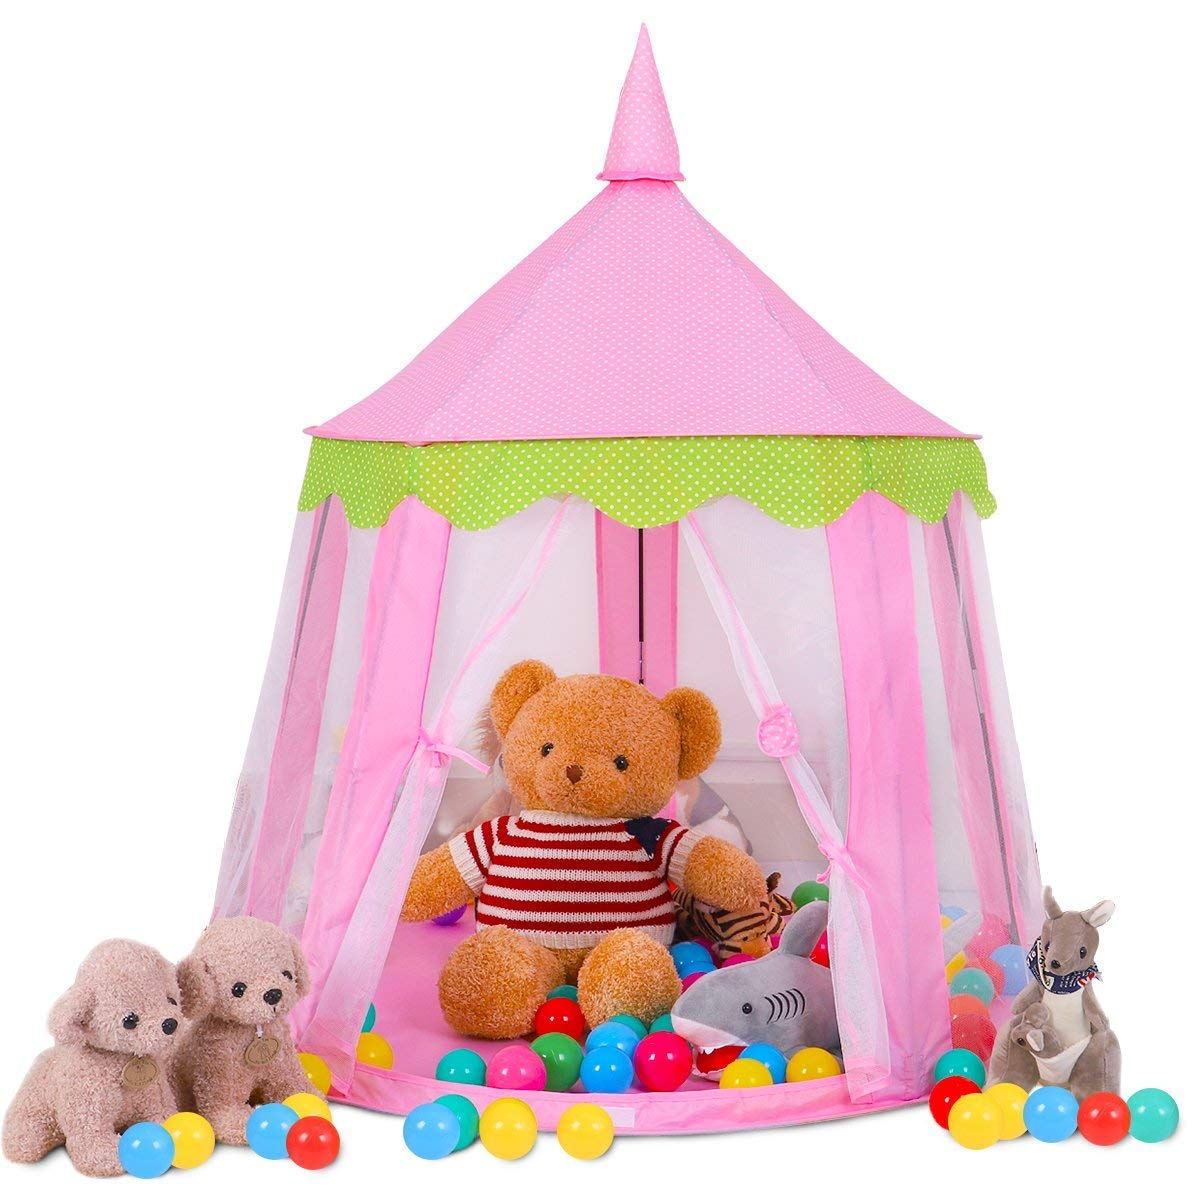 (Pink) - Buringer Large Indoor And Outdoor Kids Play House Princess Castle Kids Play Tent For Baby - Pink  ピンク B078W449RL, 鮮一 a3b44383